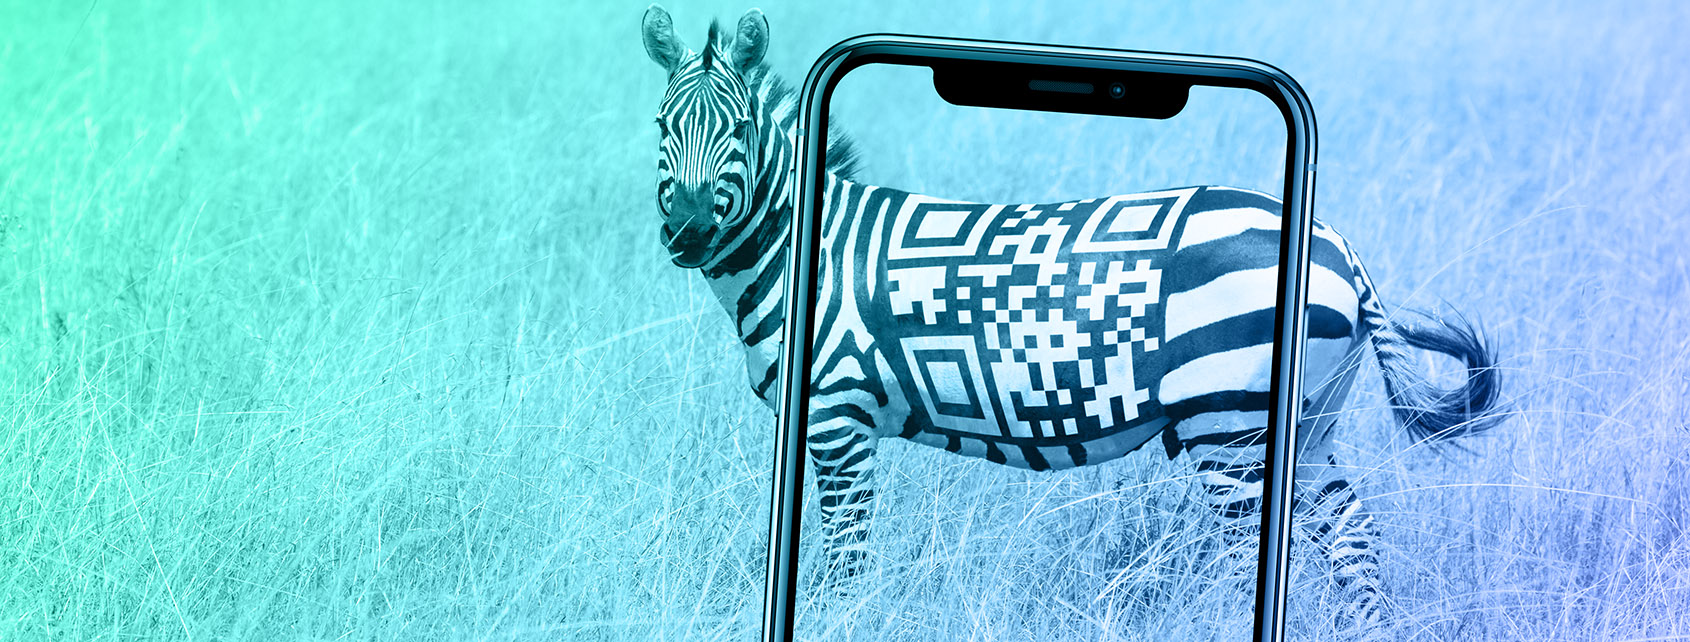 Zebra with a QR code on to be scanned